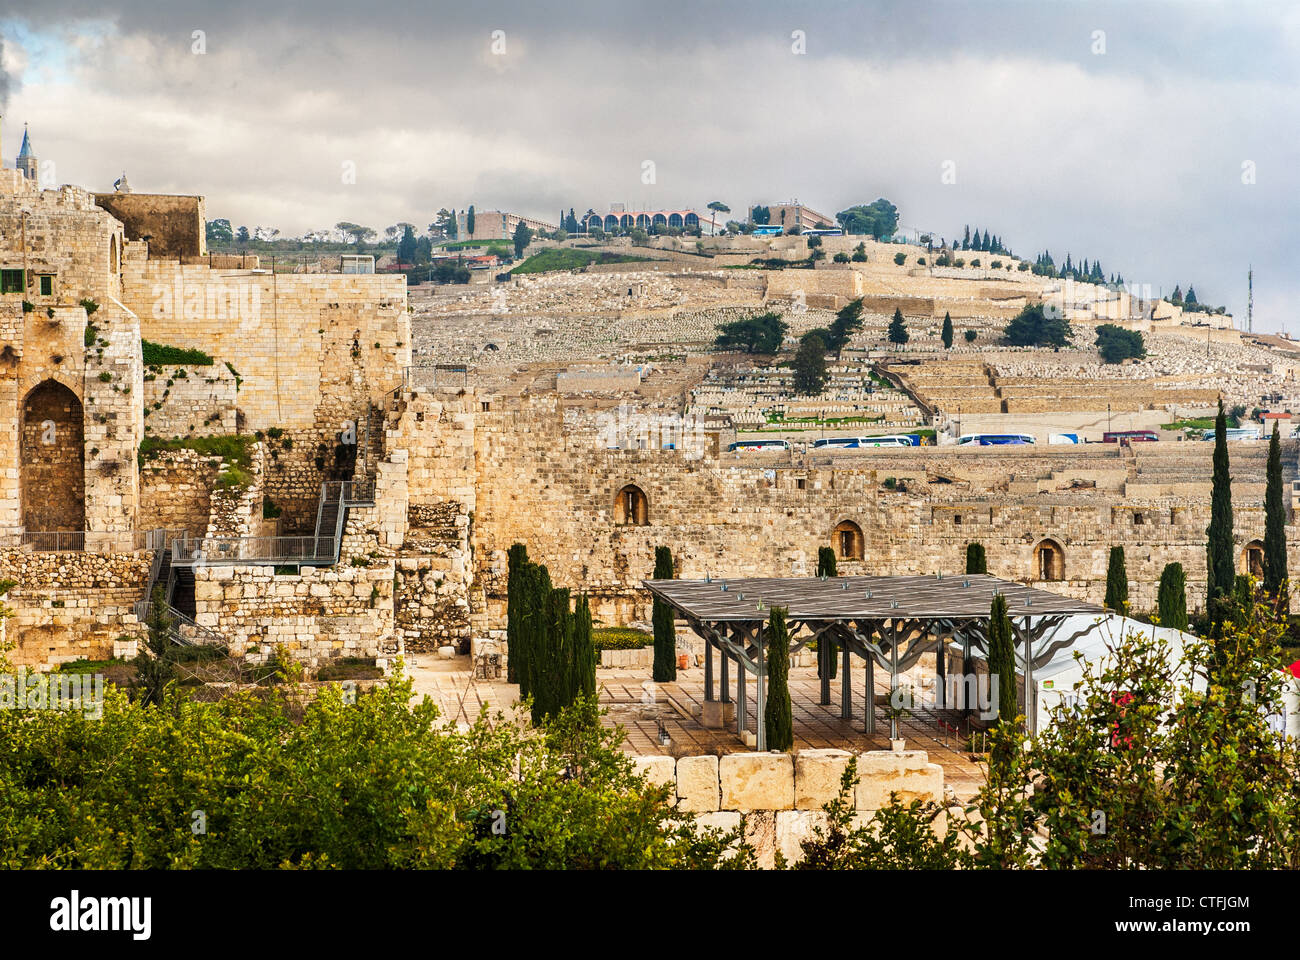 Rebuilt ruins outside the old city wall of Jerusalem, Israel with the Mount of Olives in the background. Stock Photo